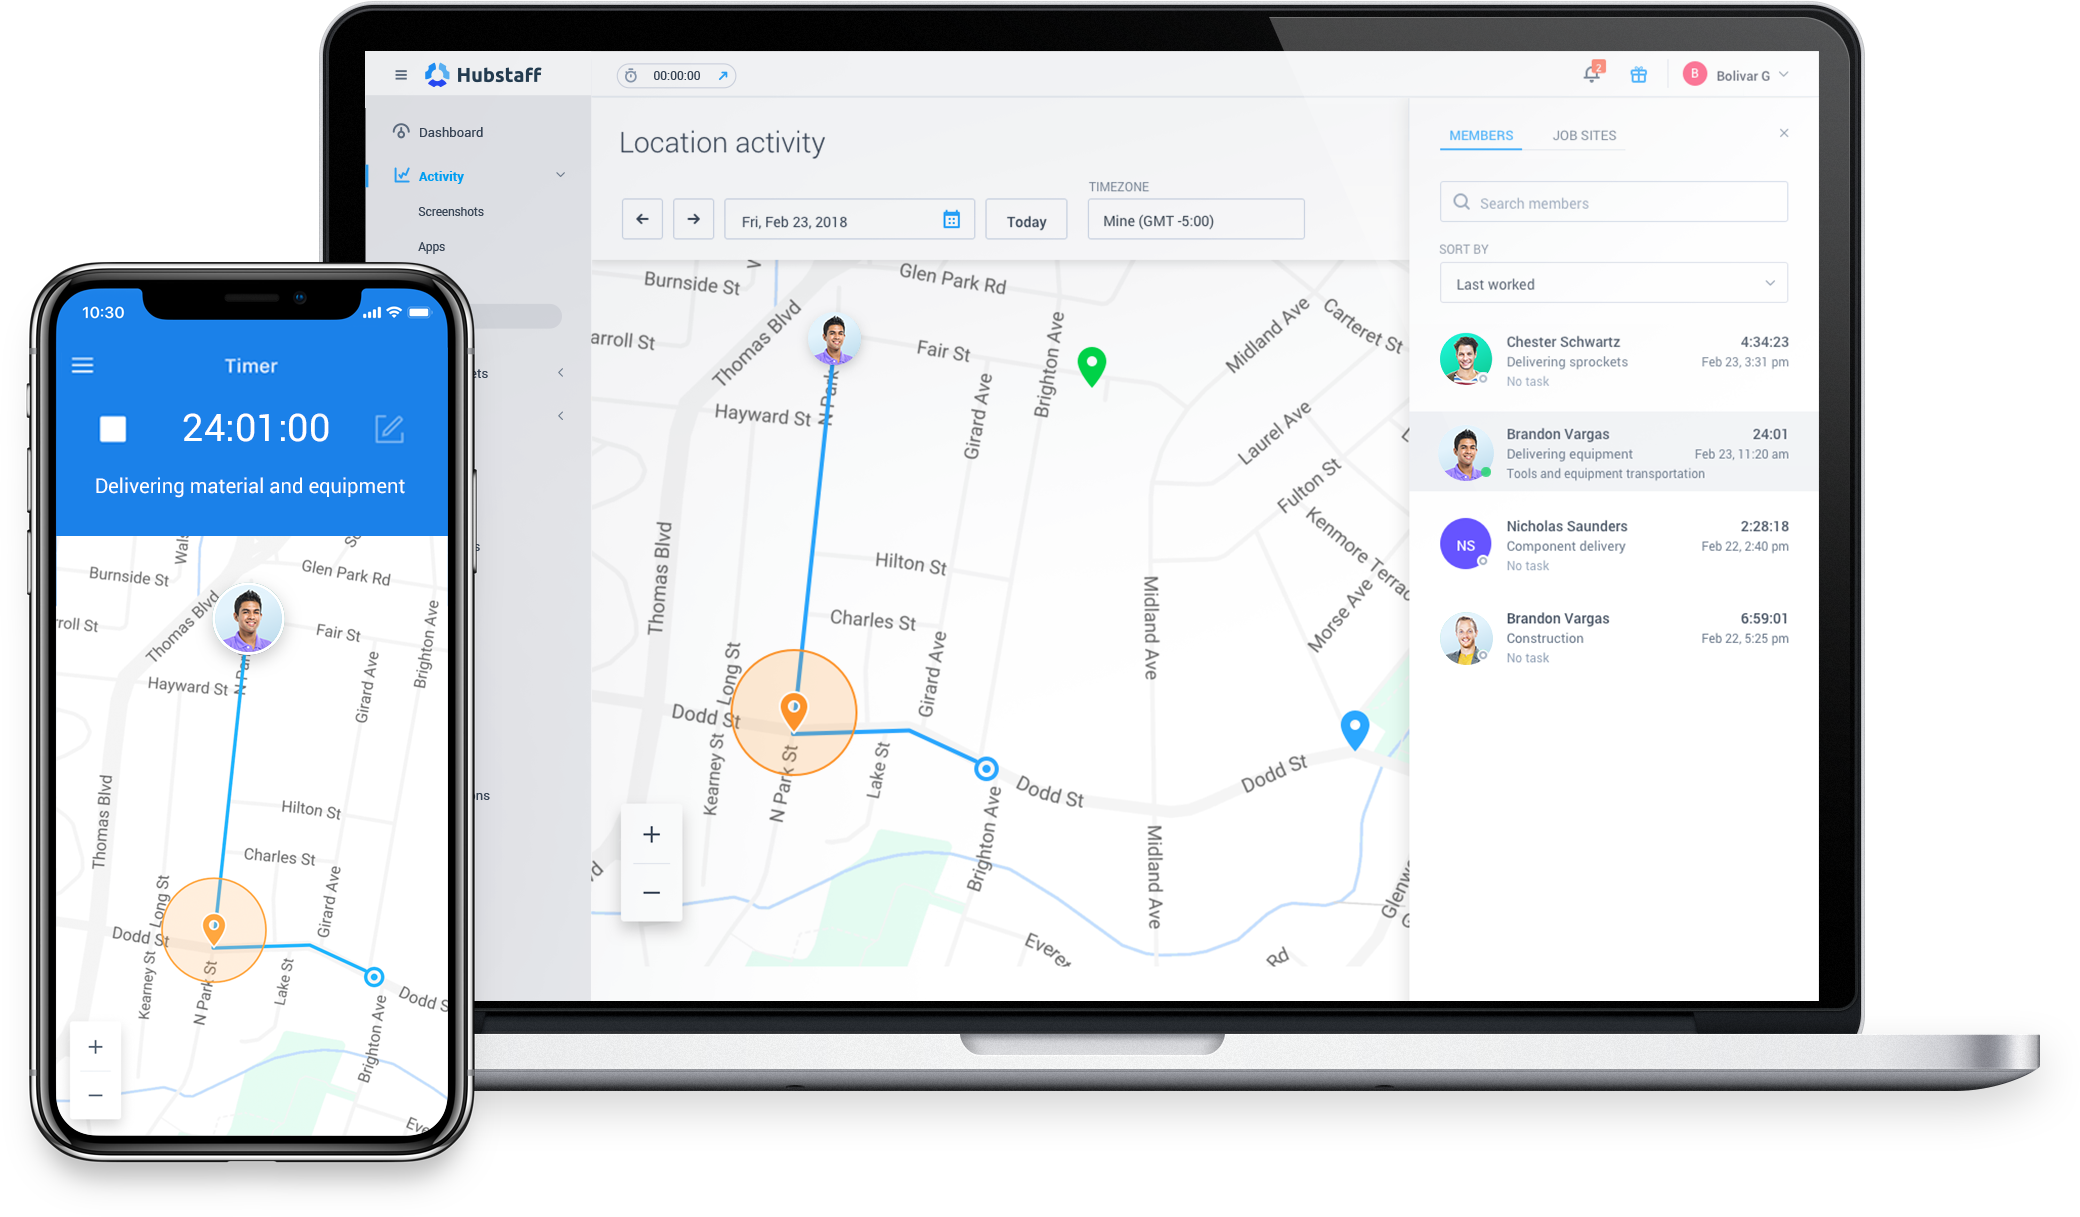 Geofencing feature in device